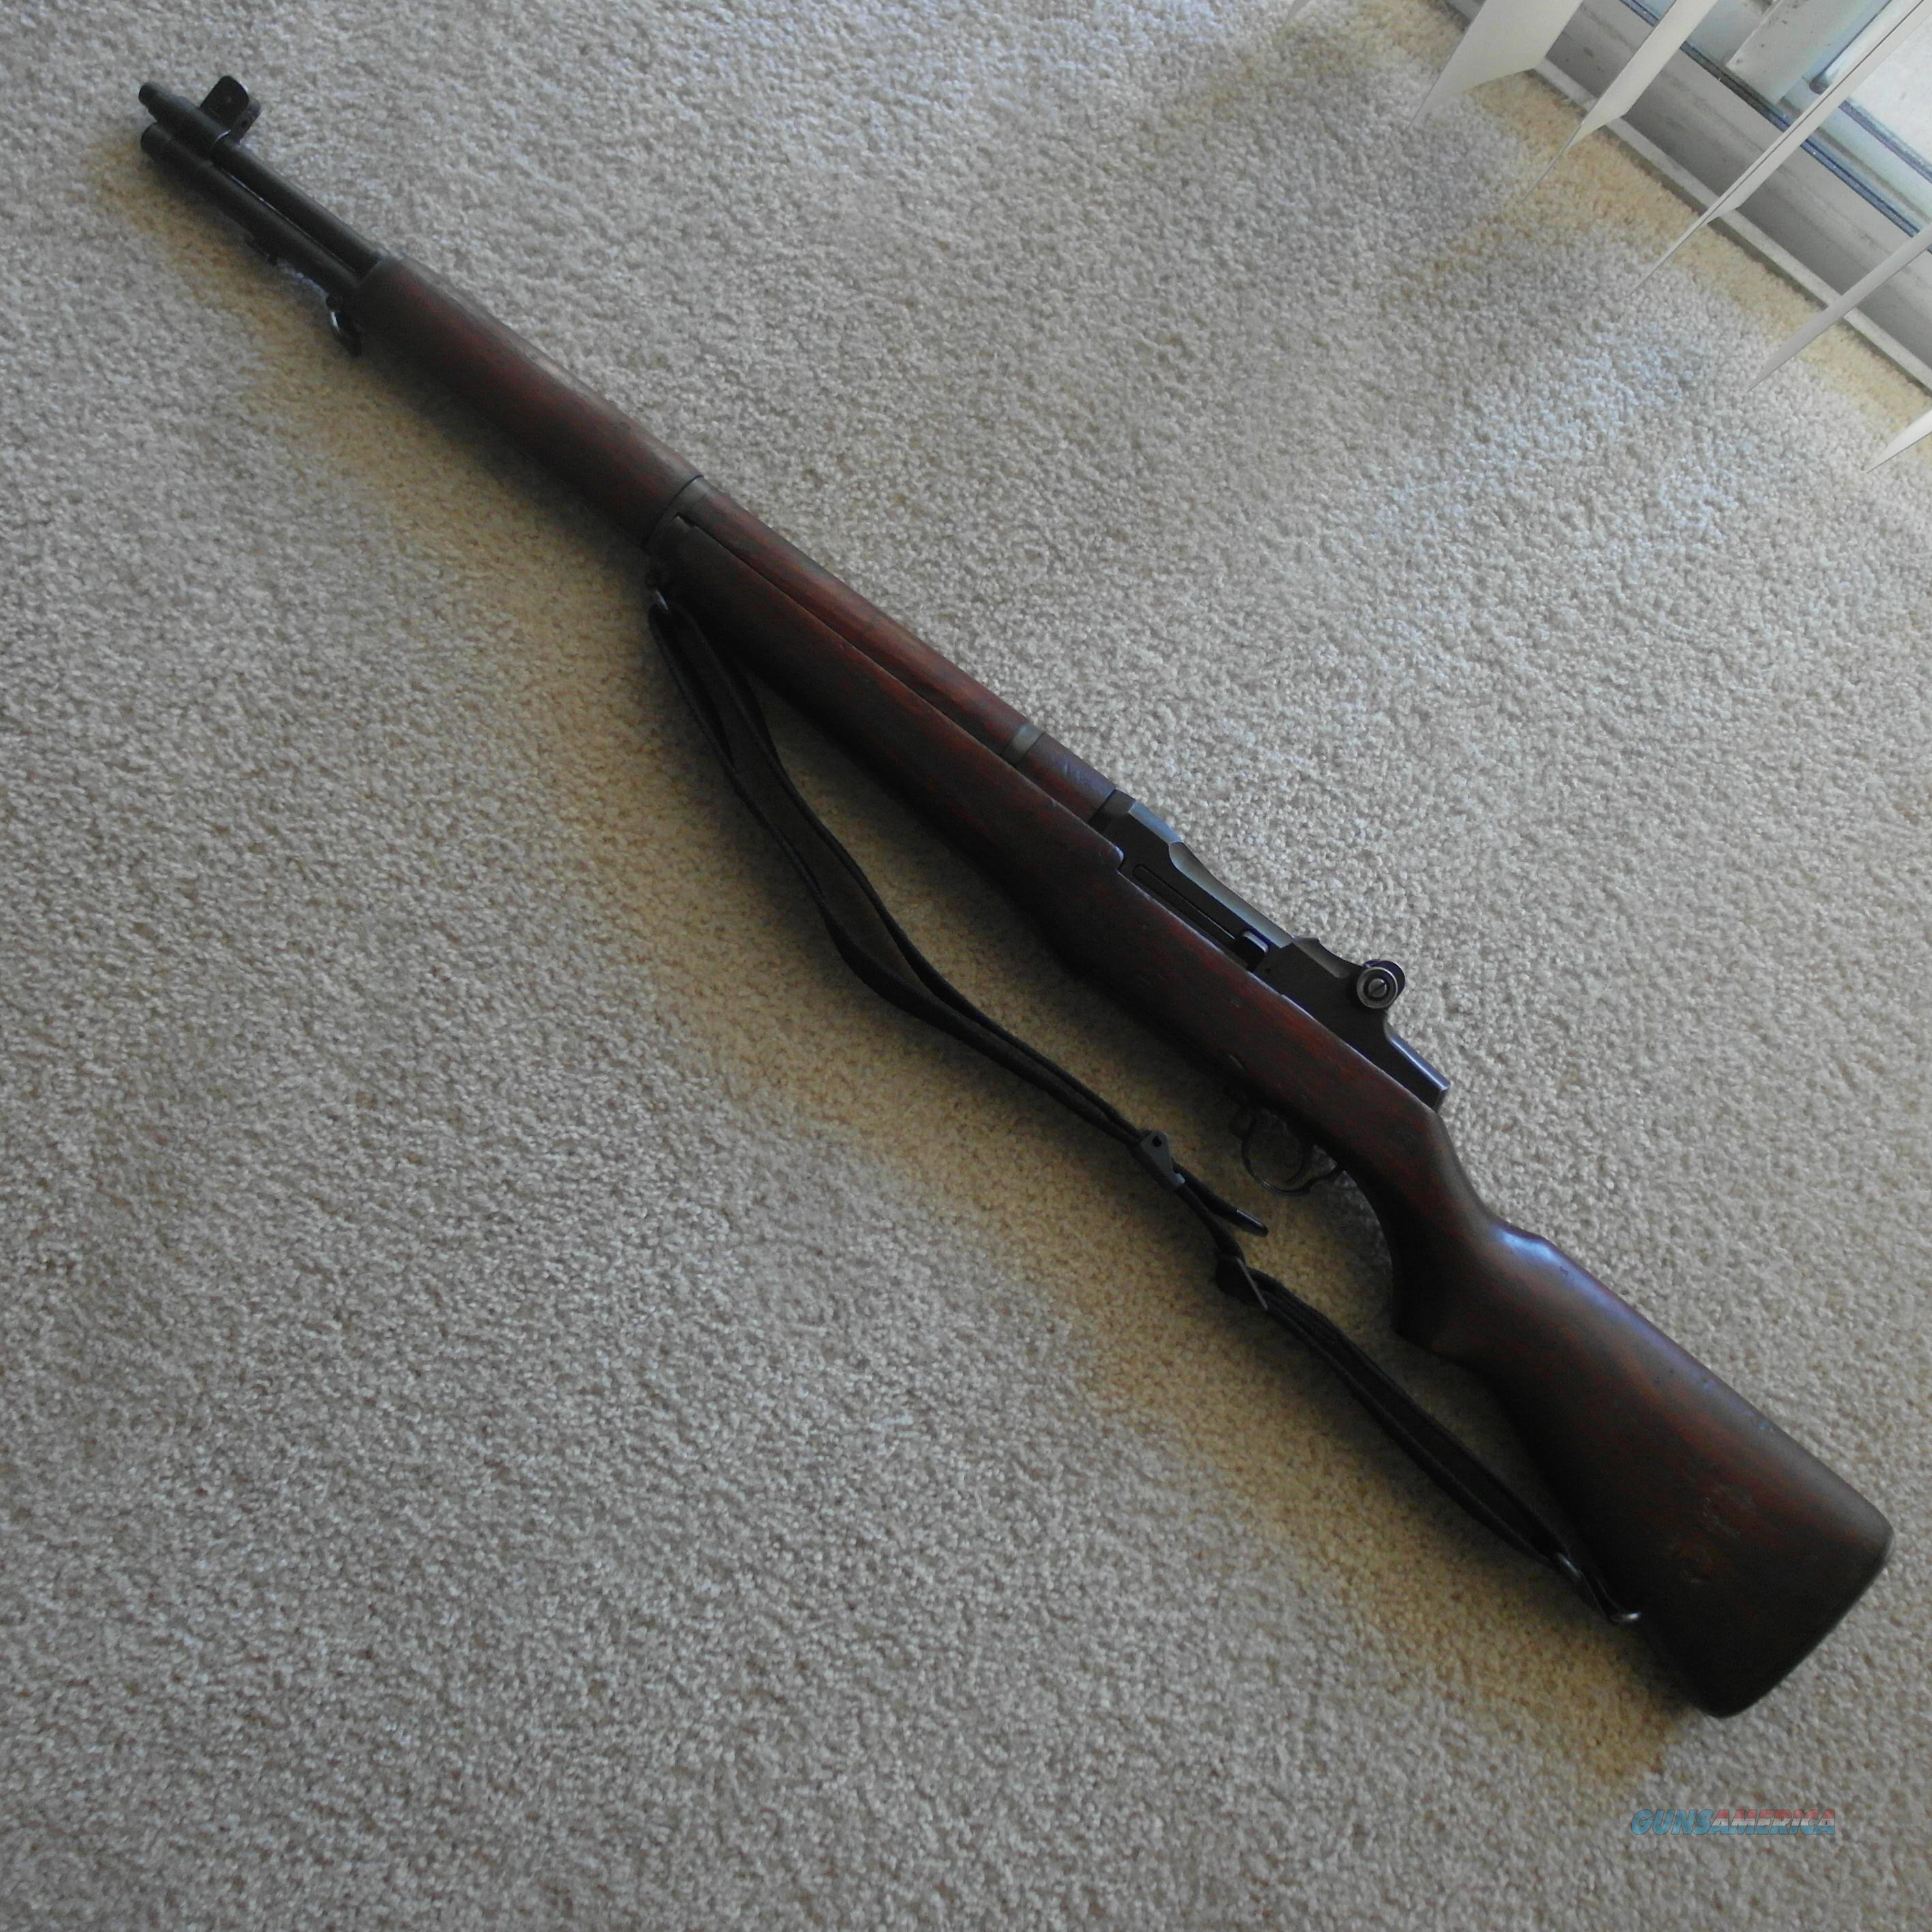 WINCHESTER M-1 GARAND - 6 DIGIT SERIAL NUMBER  Guns > Rifles > Military Misc. Rifles US > M1 Garand